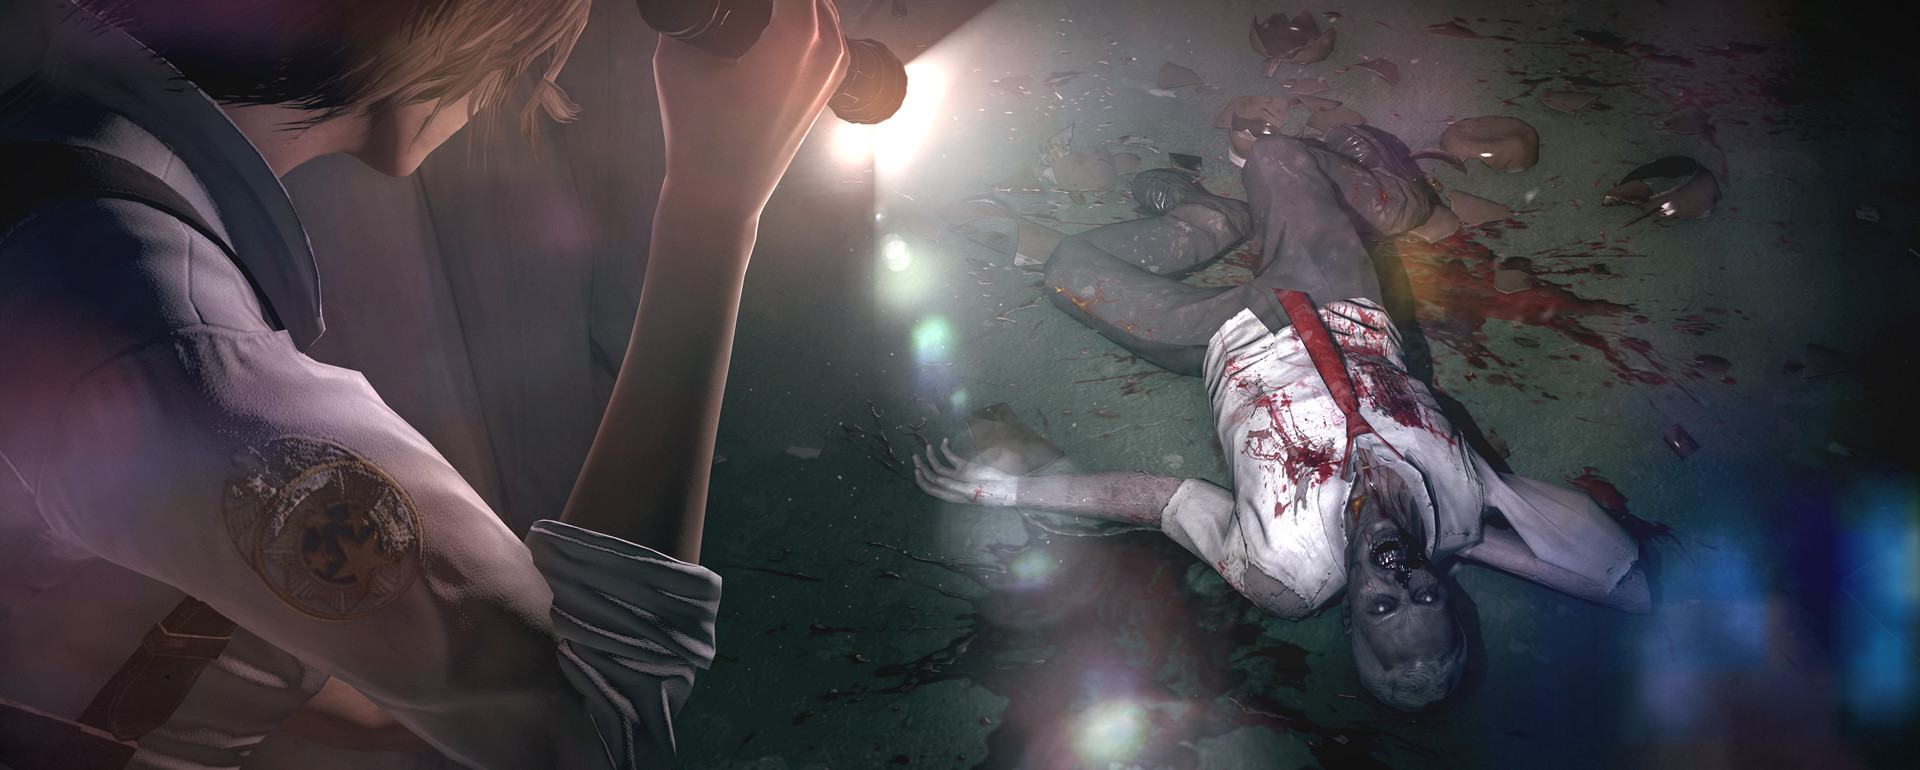 Download the evil within: the assignment full pc game.